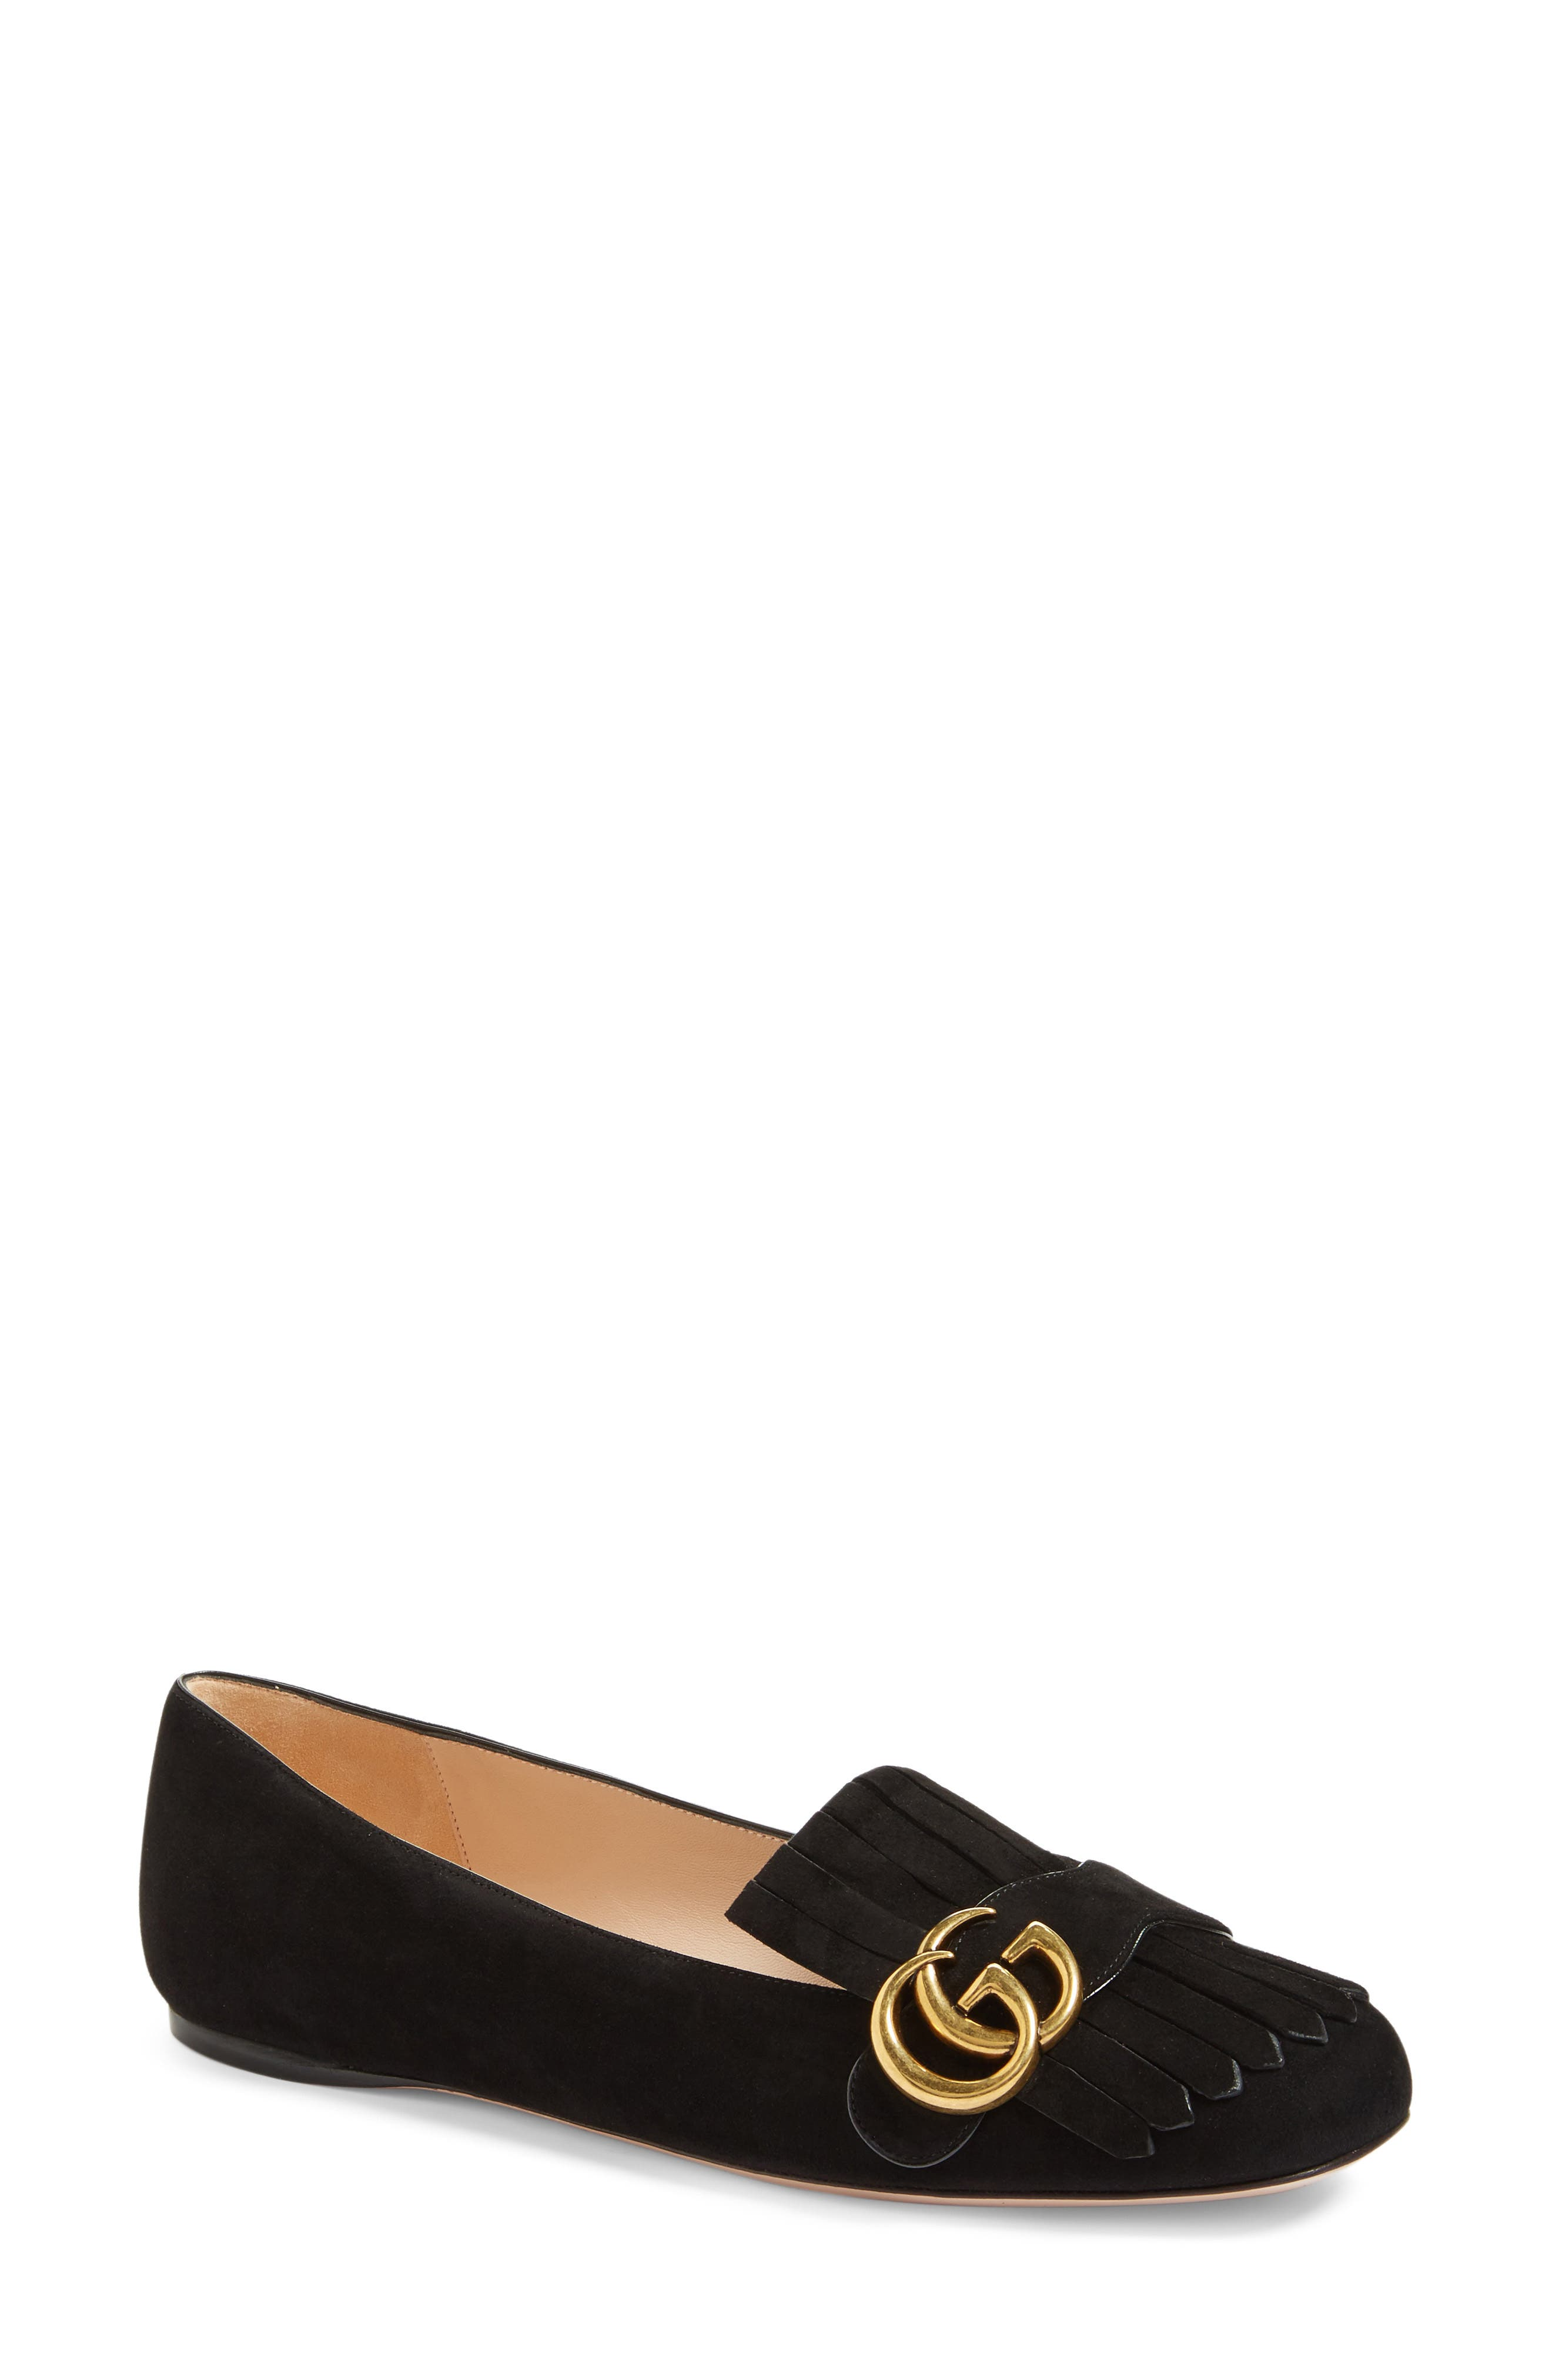 GUCCI GG Marmont Fringe Flat, Main, color, BLACK SUEDE